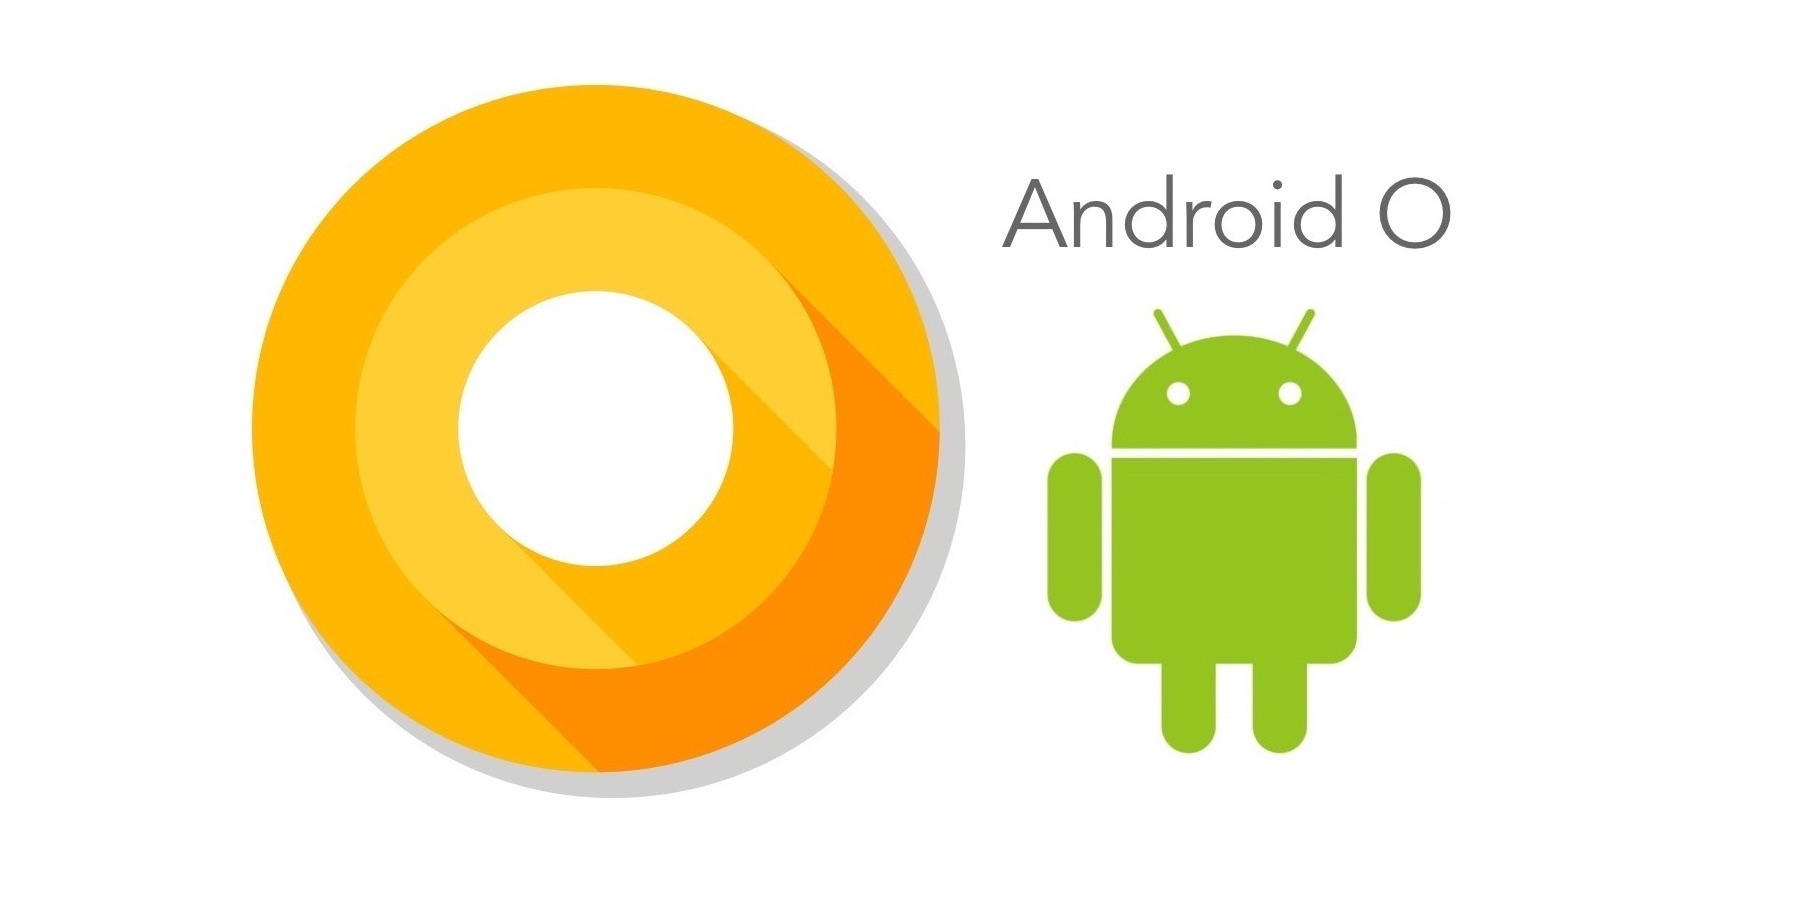 Google's Android O Confirmed For Late Summer Release